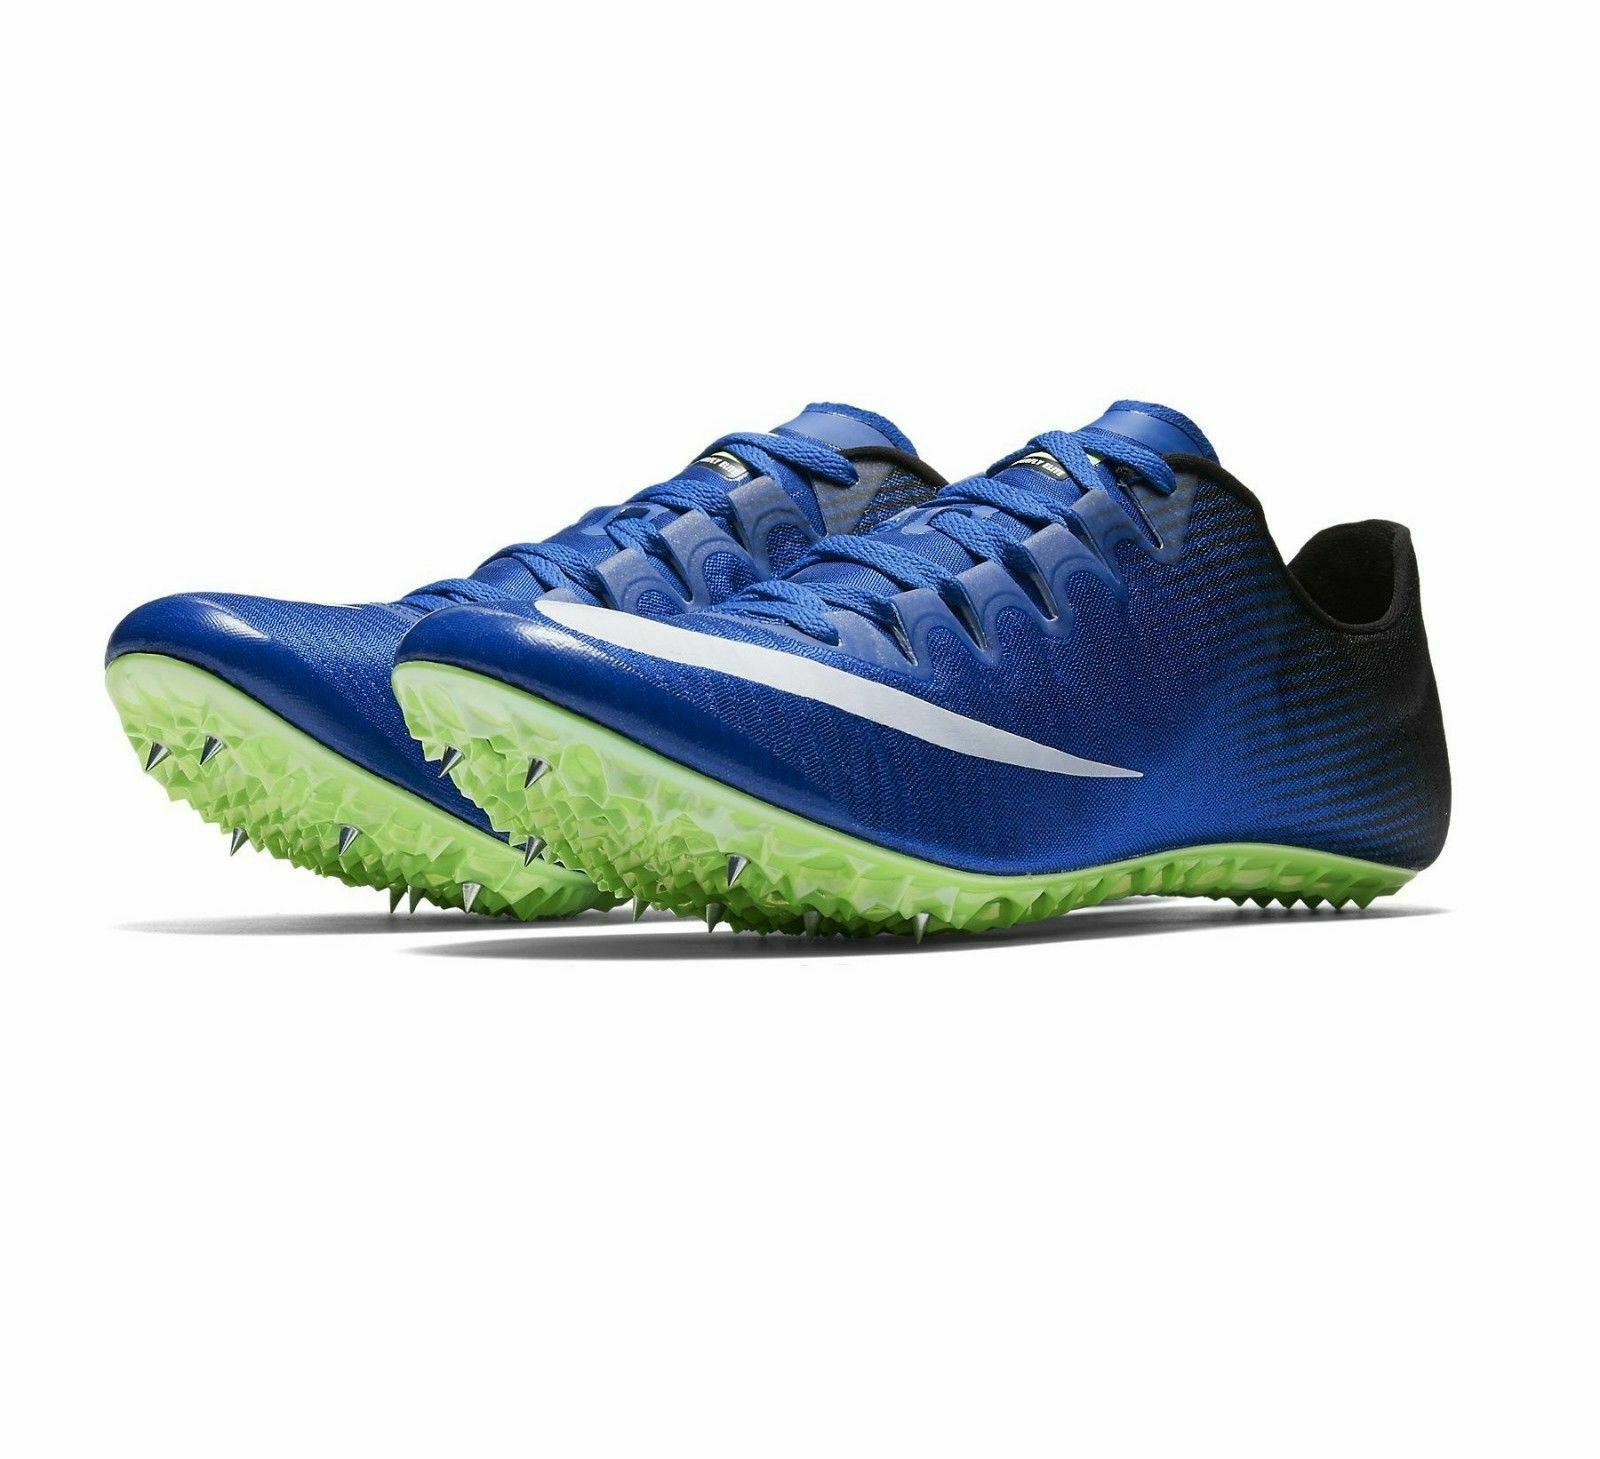 476b643b6 Mens Nike Air Zoom SUPERFLY ELITE Track   Field Running Spikes Cleats Shoes  Retail Price   150.00. BRAND NEW